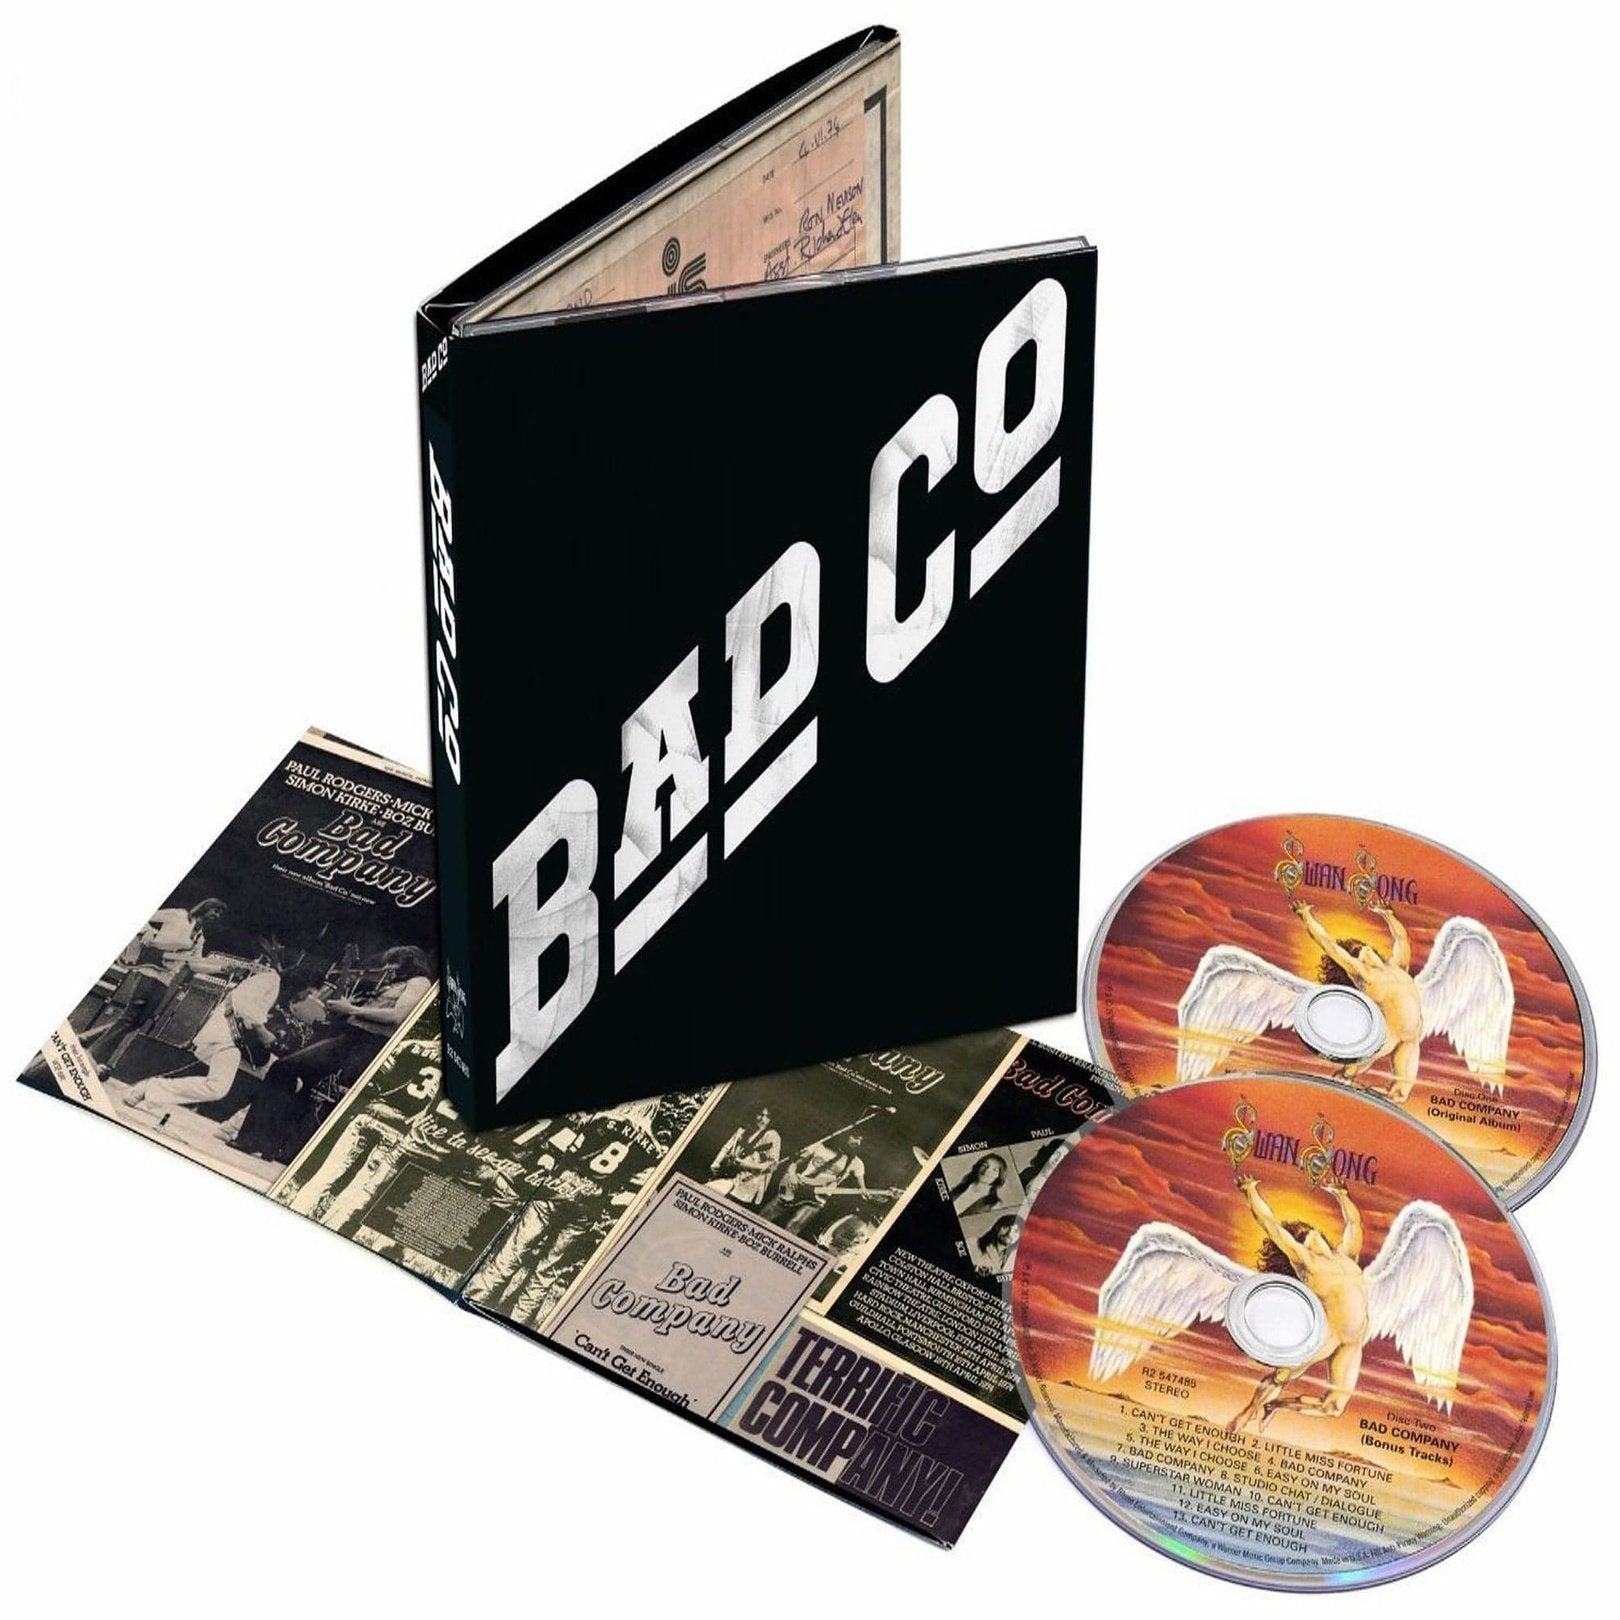 Bad Company - Bad Company - Self Titled - Deluxe Edition - 2 Cd